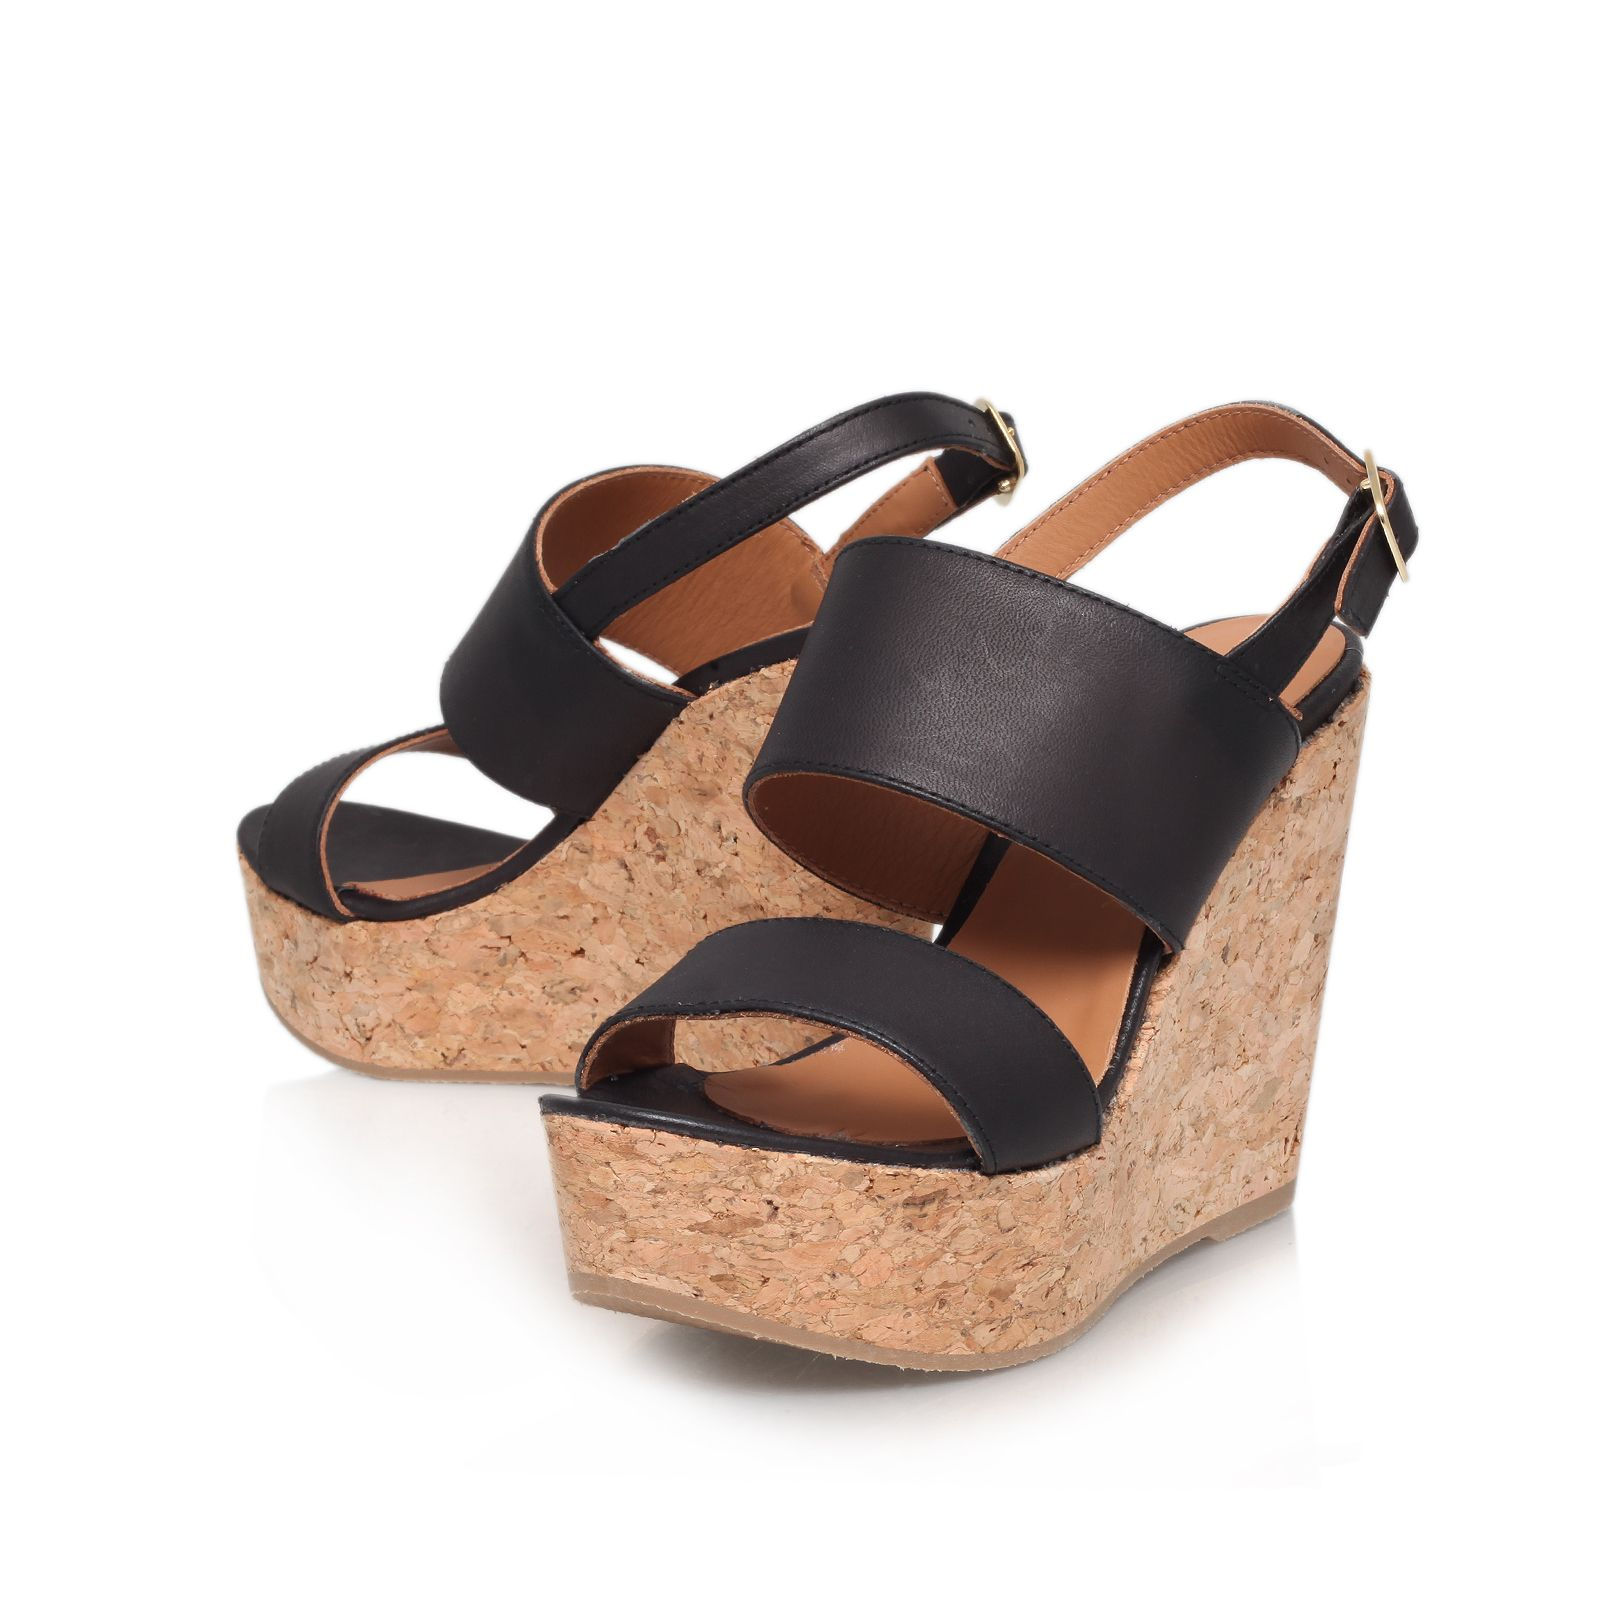 Gardenia high heel wedges